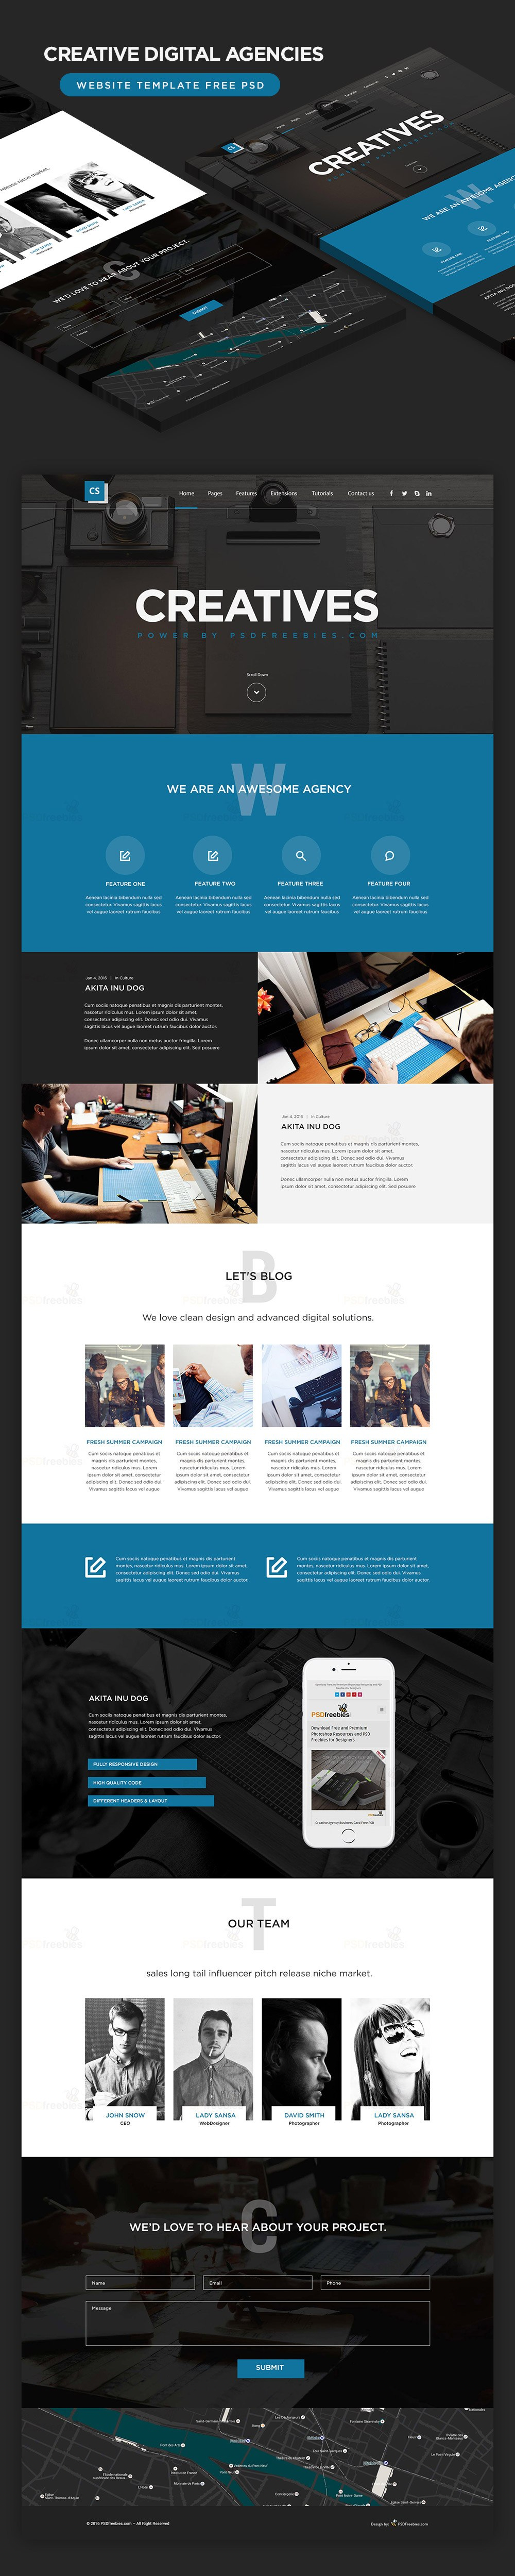 High Quality  Free Corporate And Business Web Templates Psd With Regard To Free Psd Website Templates For Business